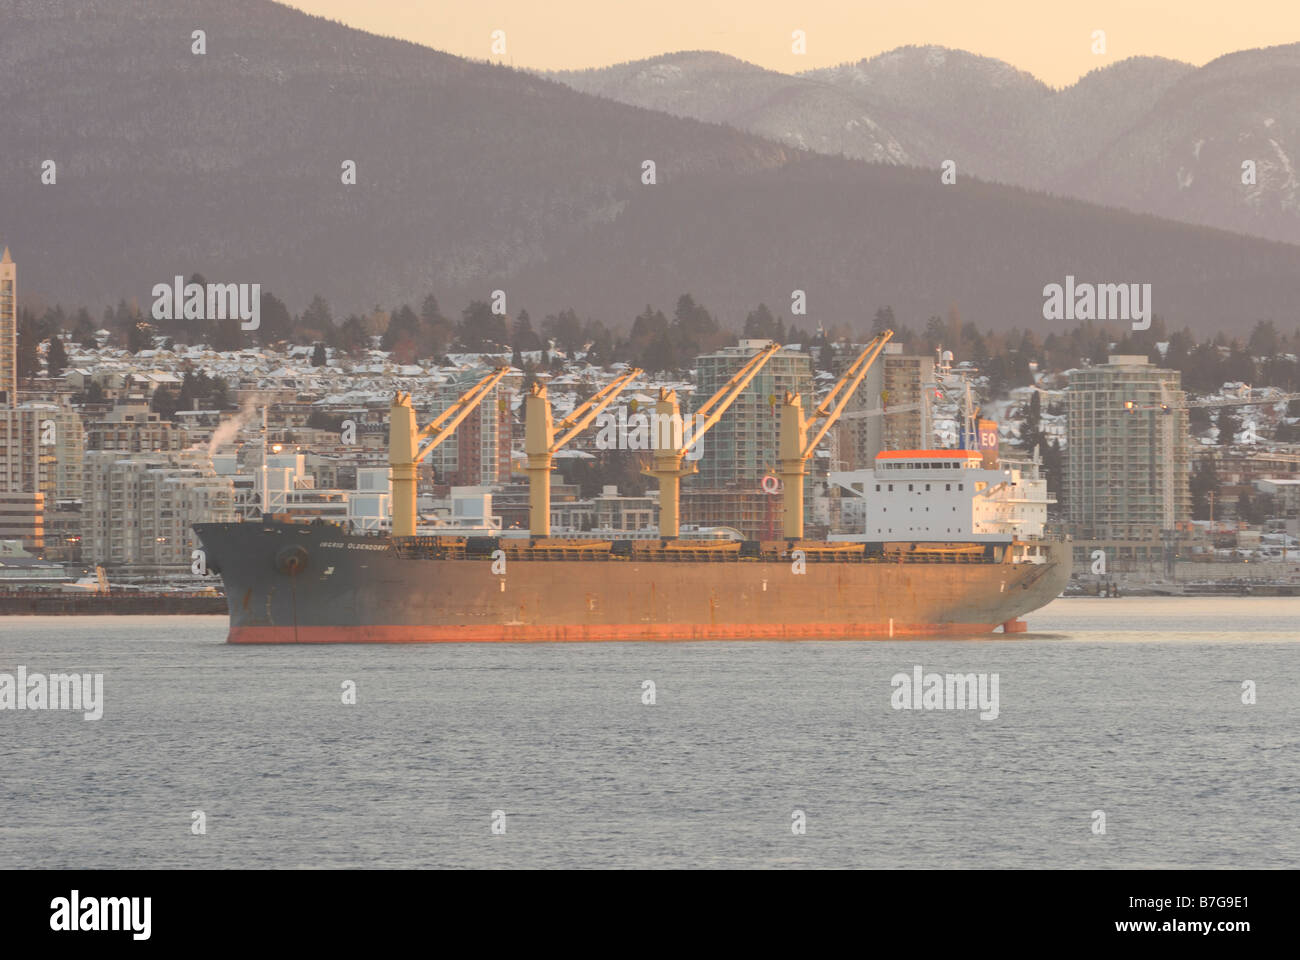 Freight anchored in the inner harbor of Vancouver - Stock Image